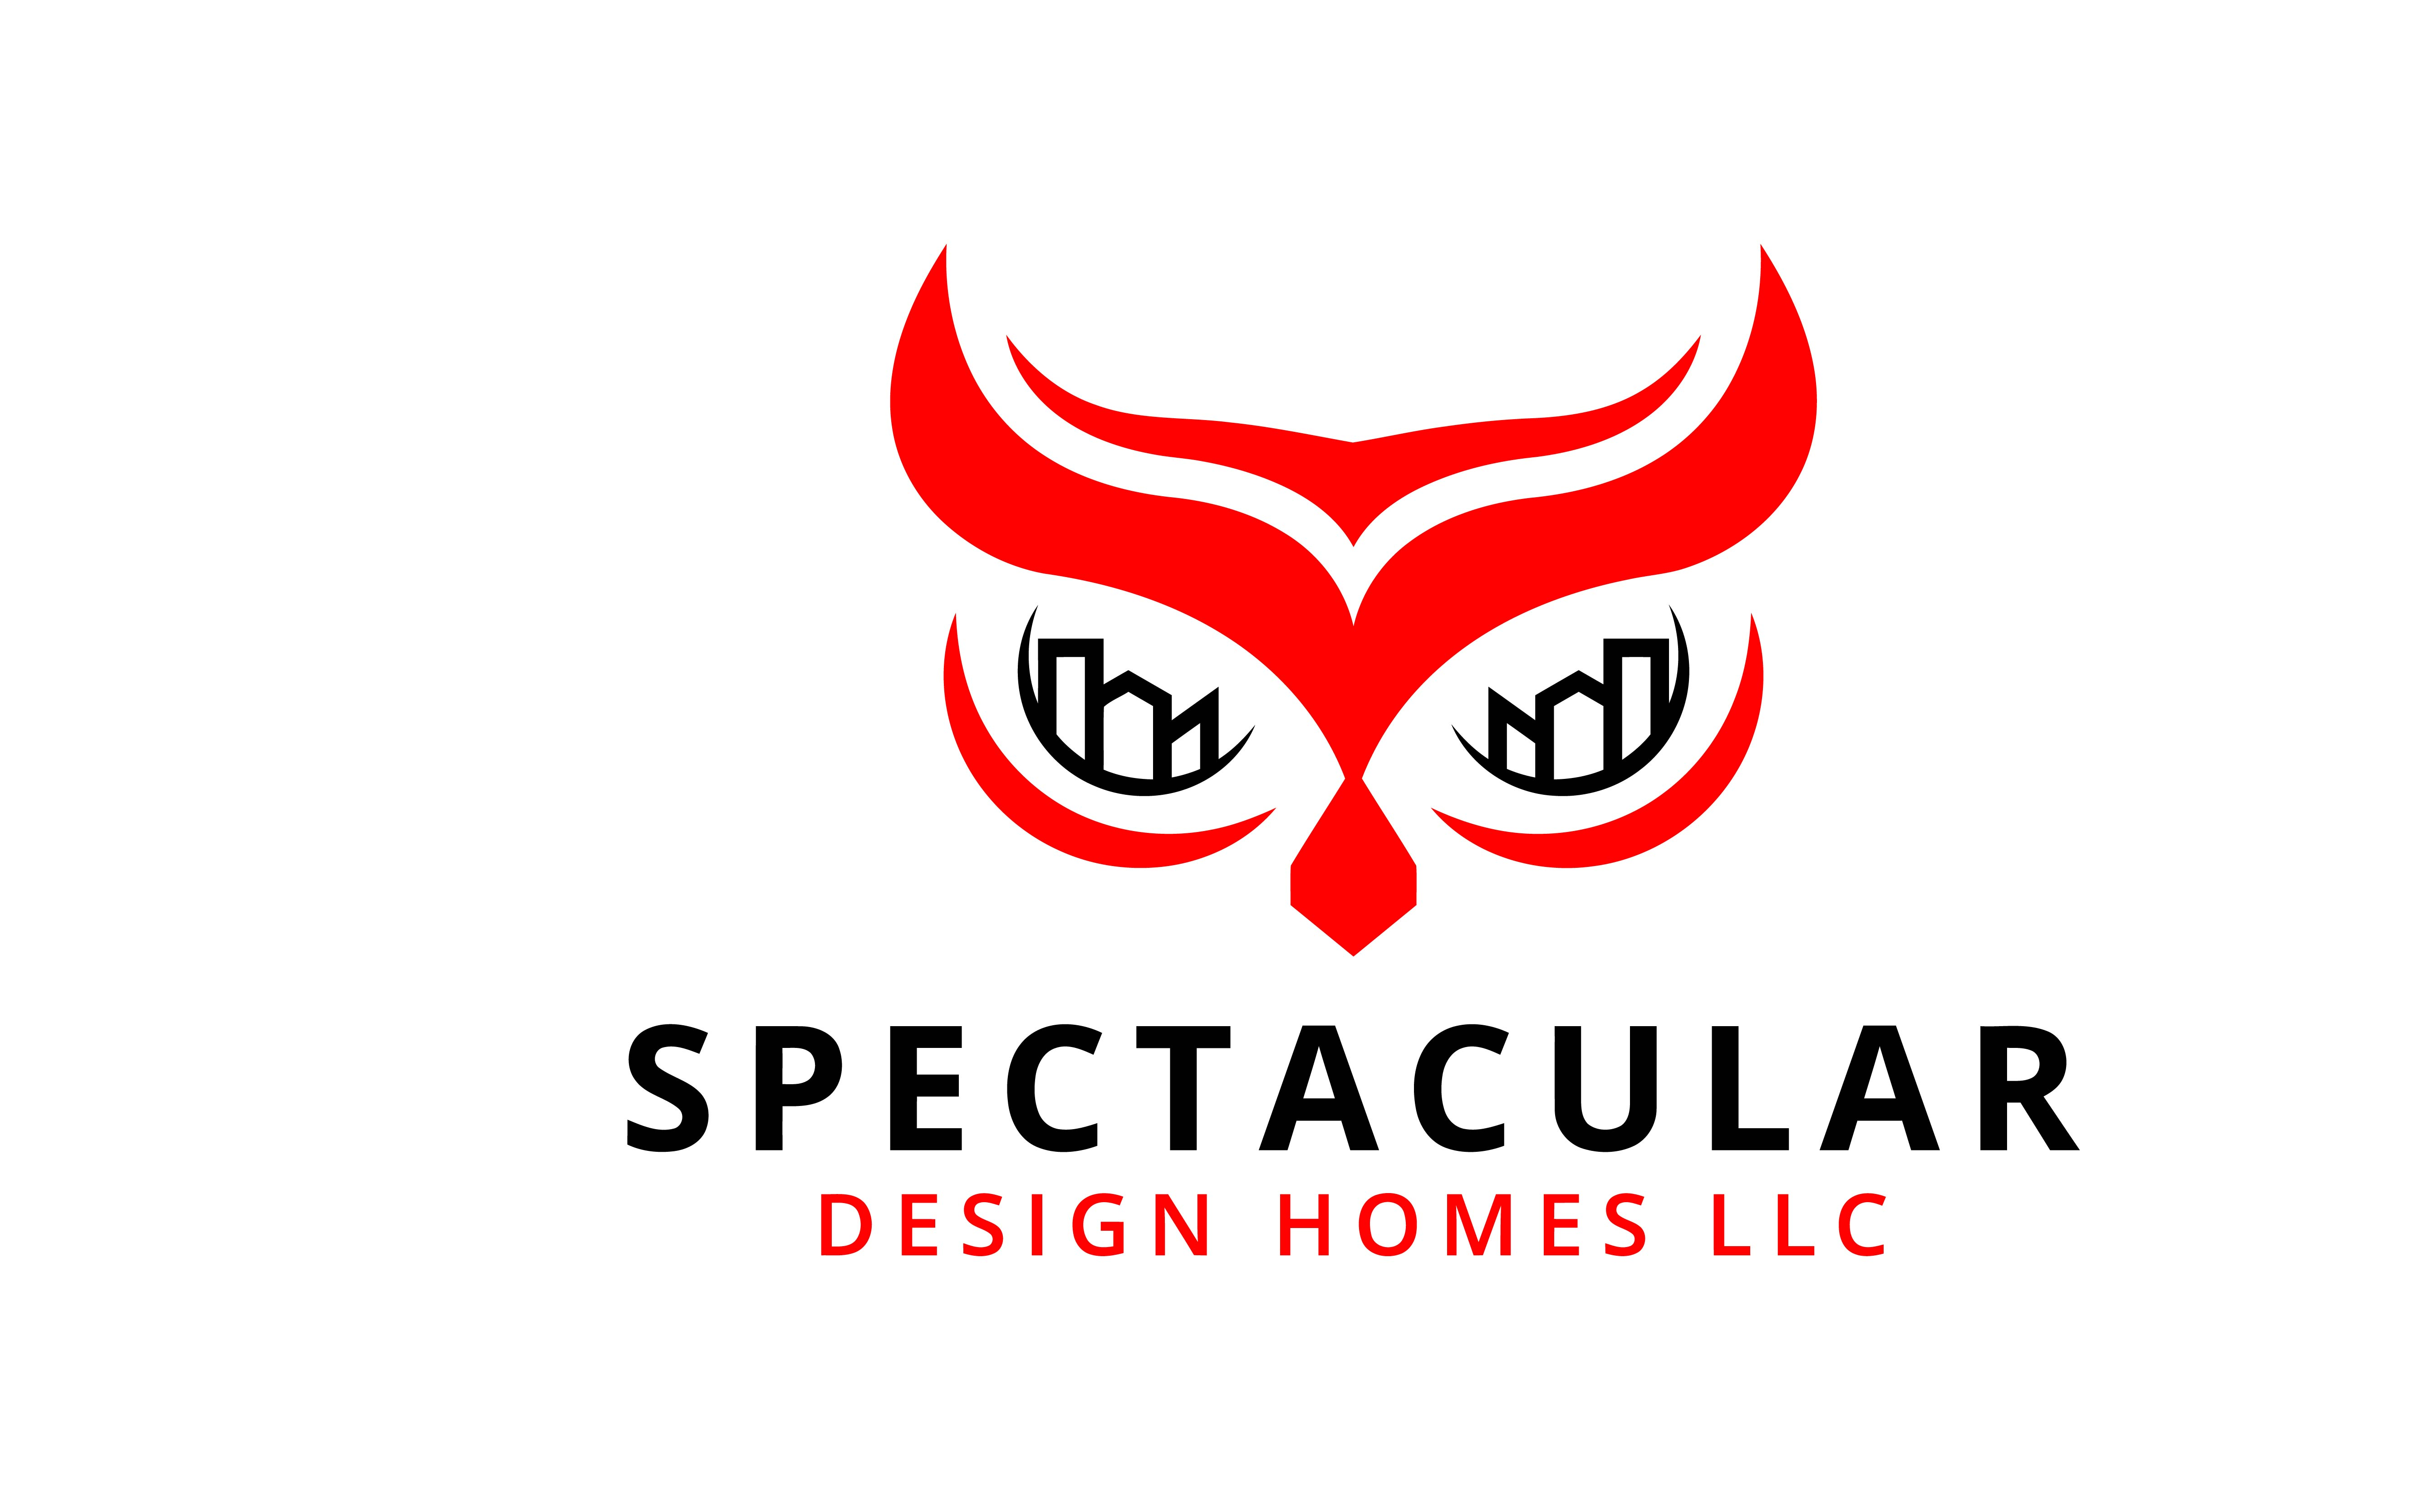 Spectacular Design Homes